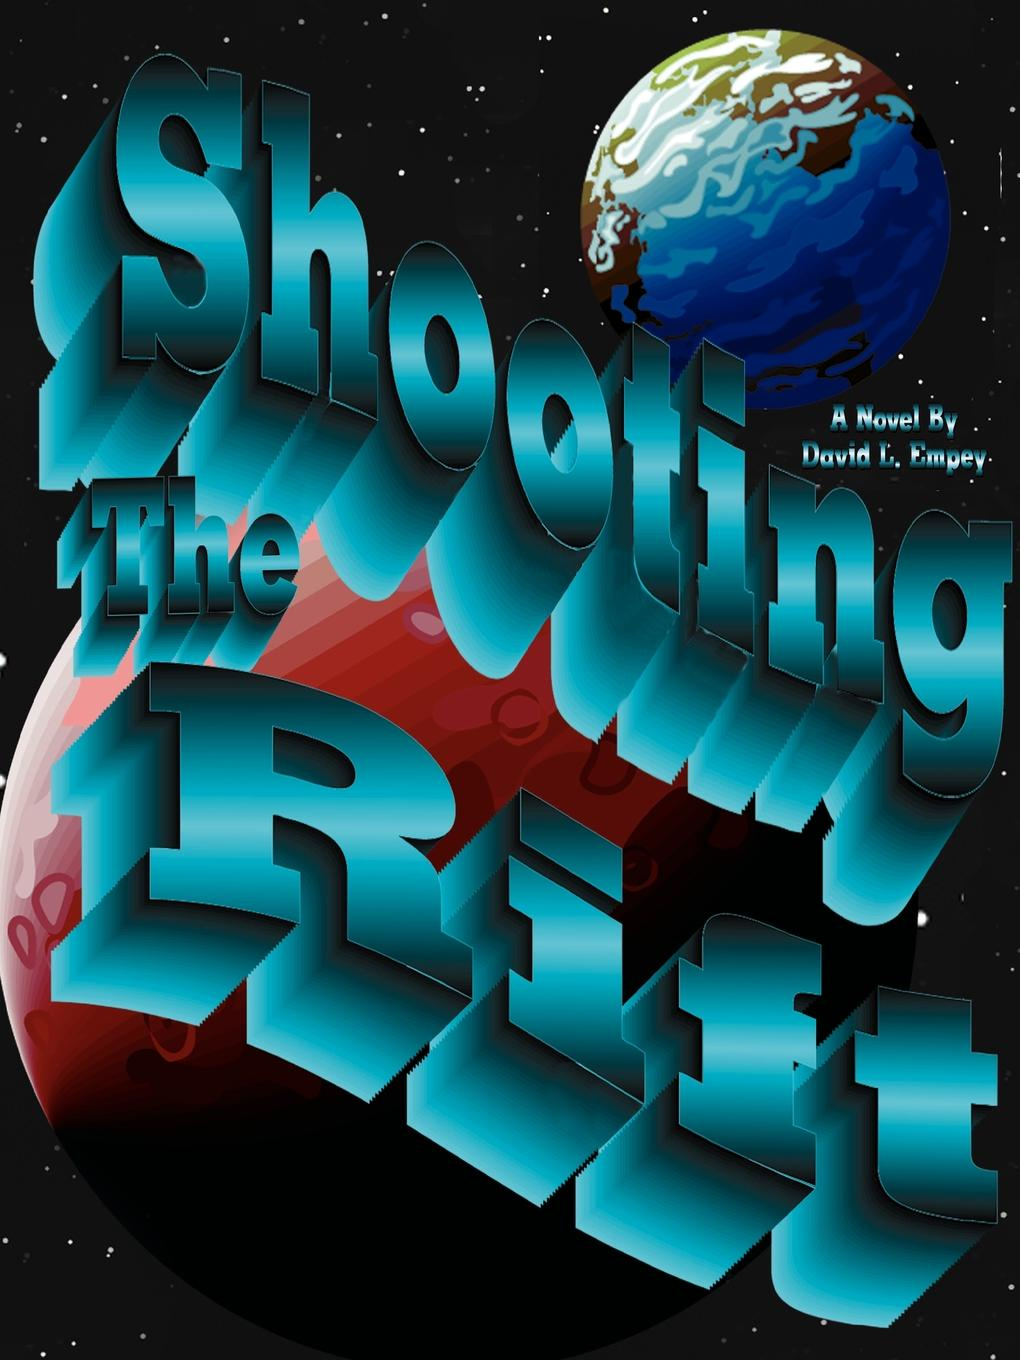 David L. Empey Shooting the Rift, the Glass Towers, the Pale King цена